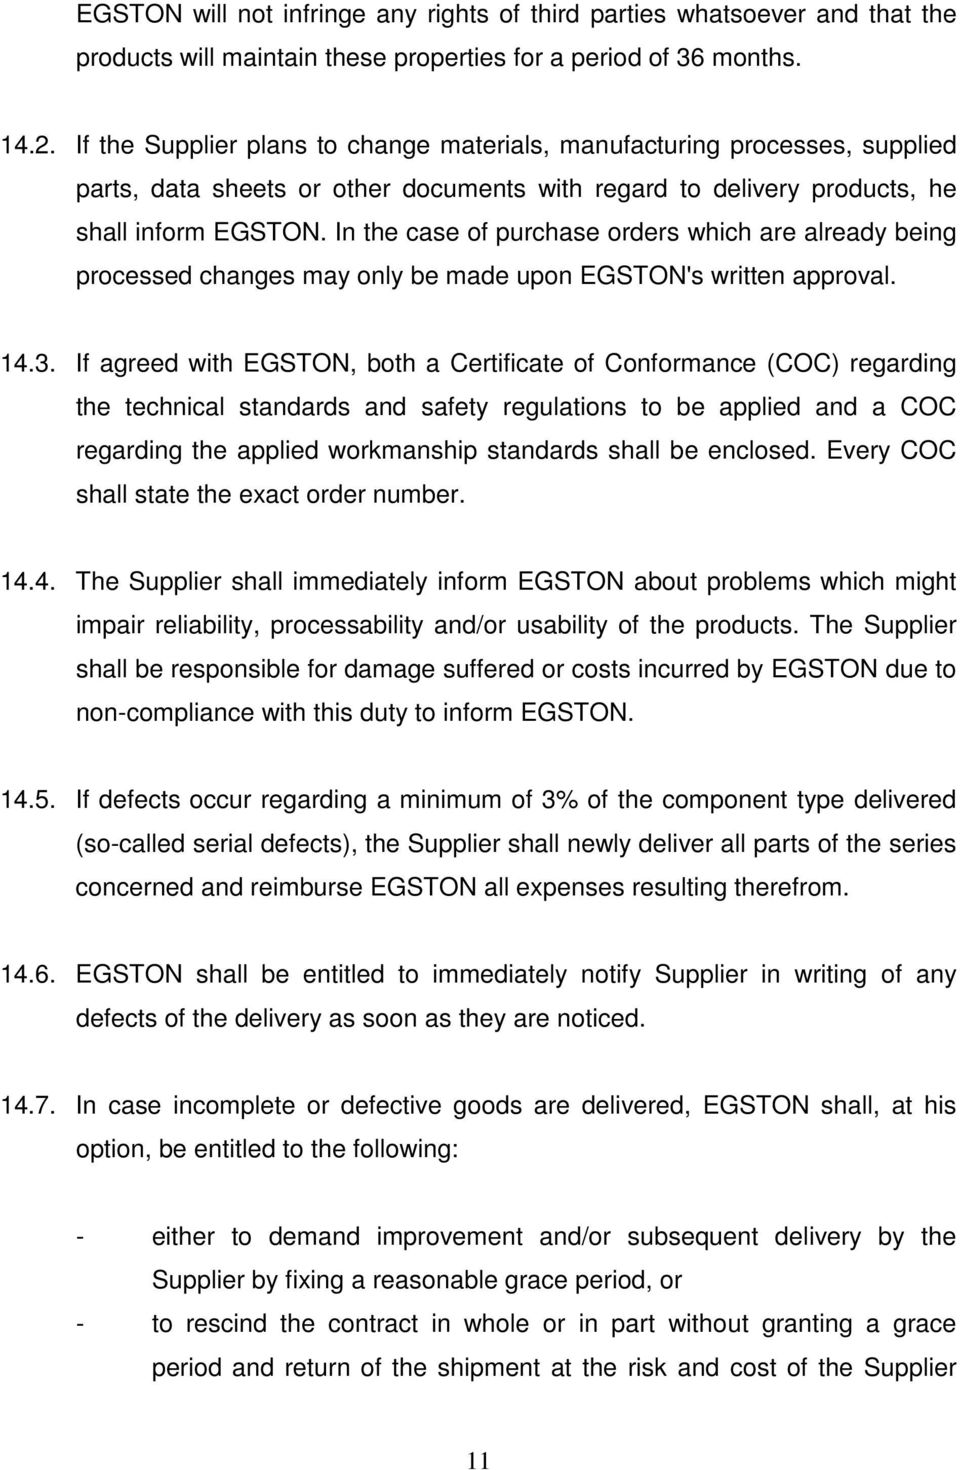 In the case of purchase orders which are already being processed changes may only be made upon EGSTON's written approval. 14.3.